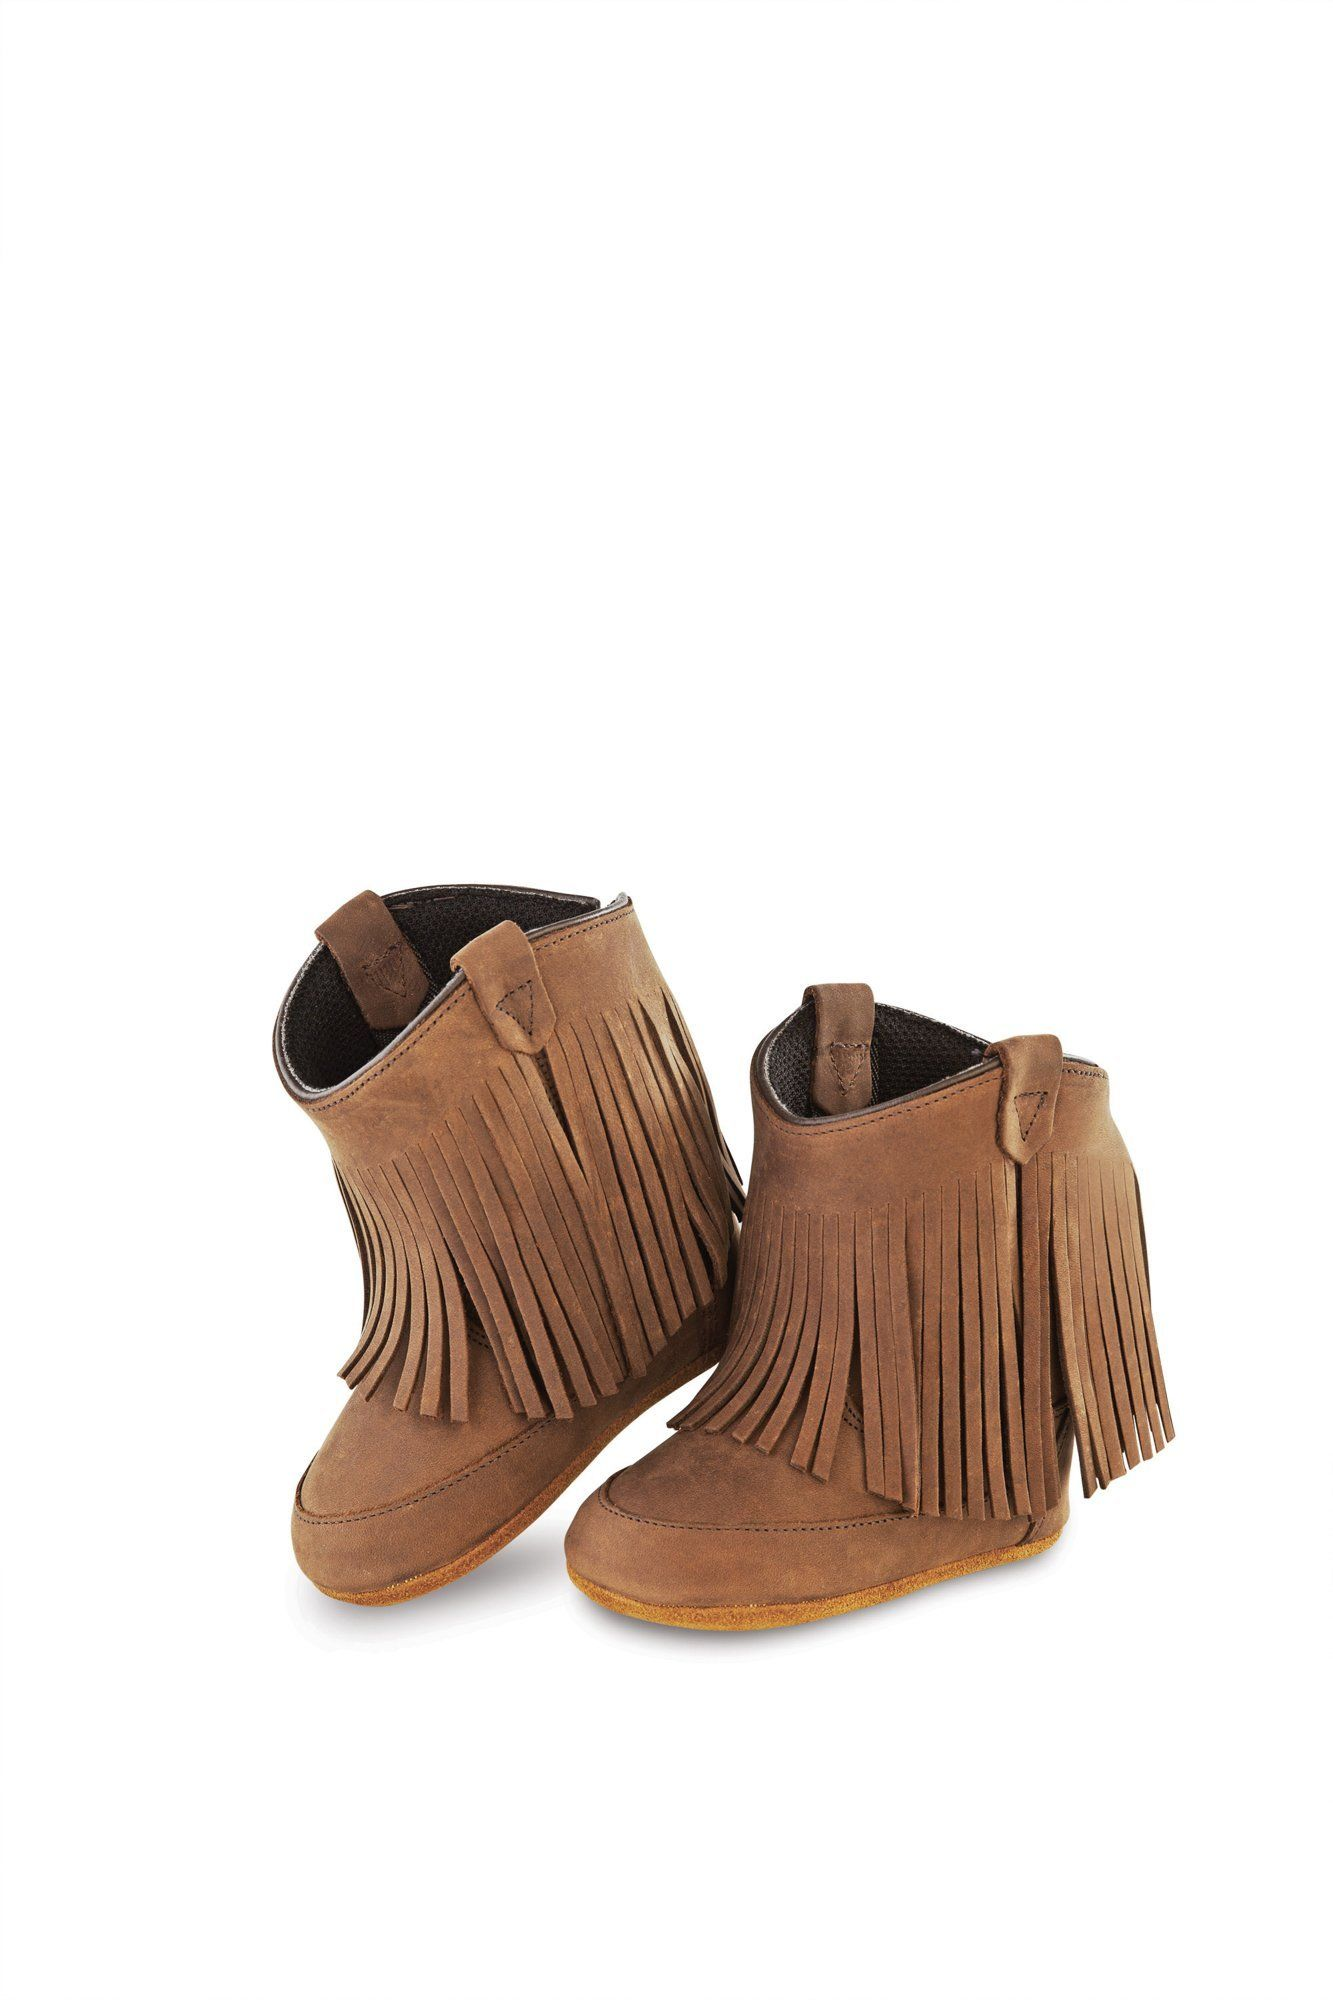 Girl cowboy boots, Toddler girl shoes